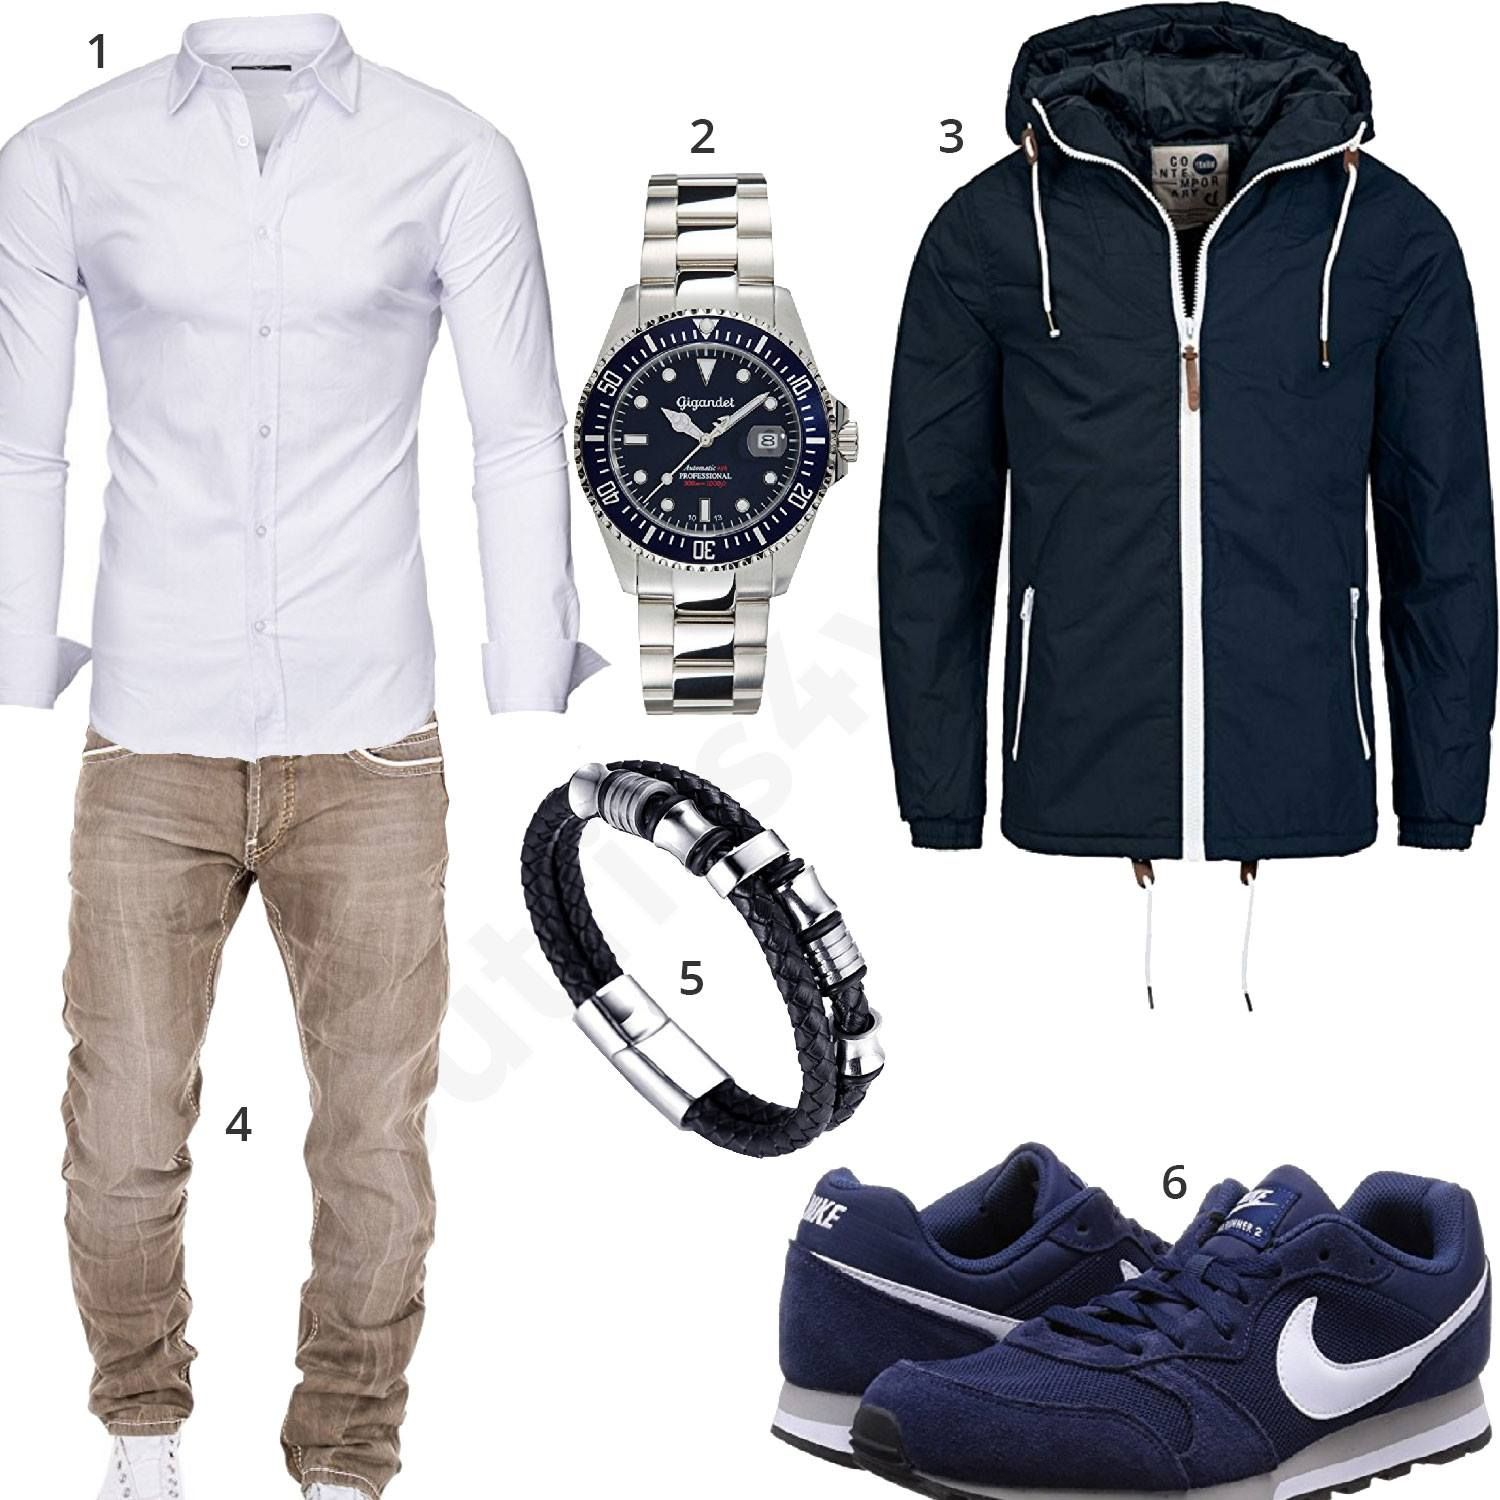 5bf08e89ad0 Herren-Outfit mit Gigandet Armbanduhr (m0329